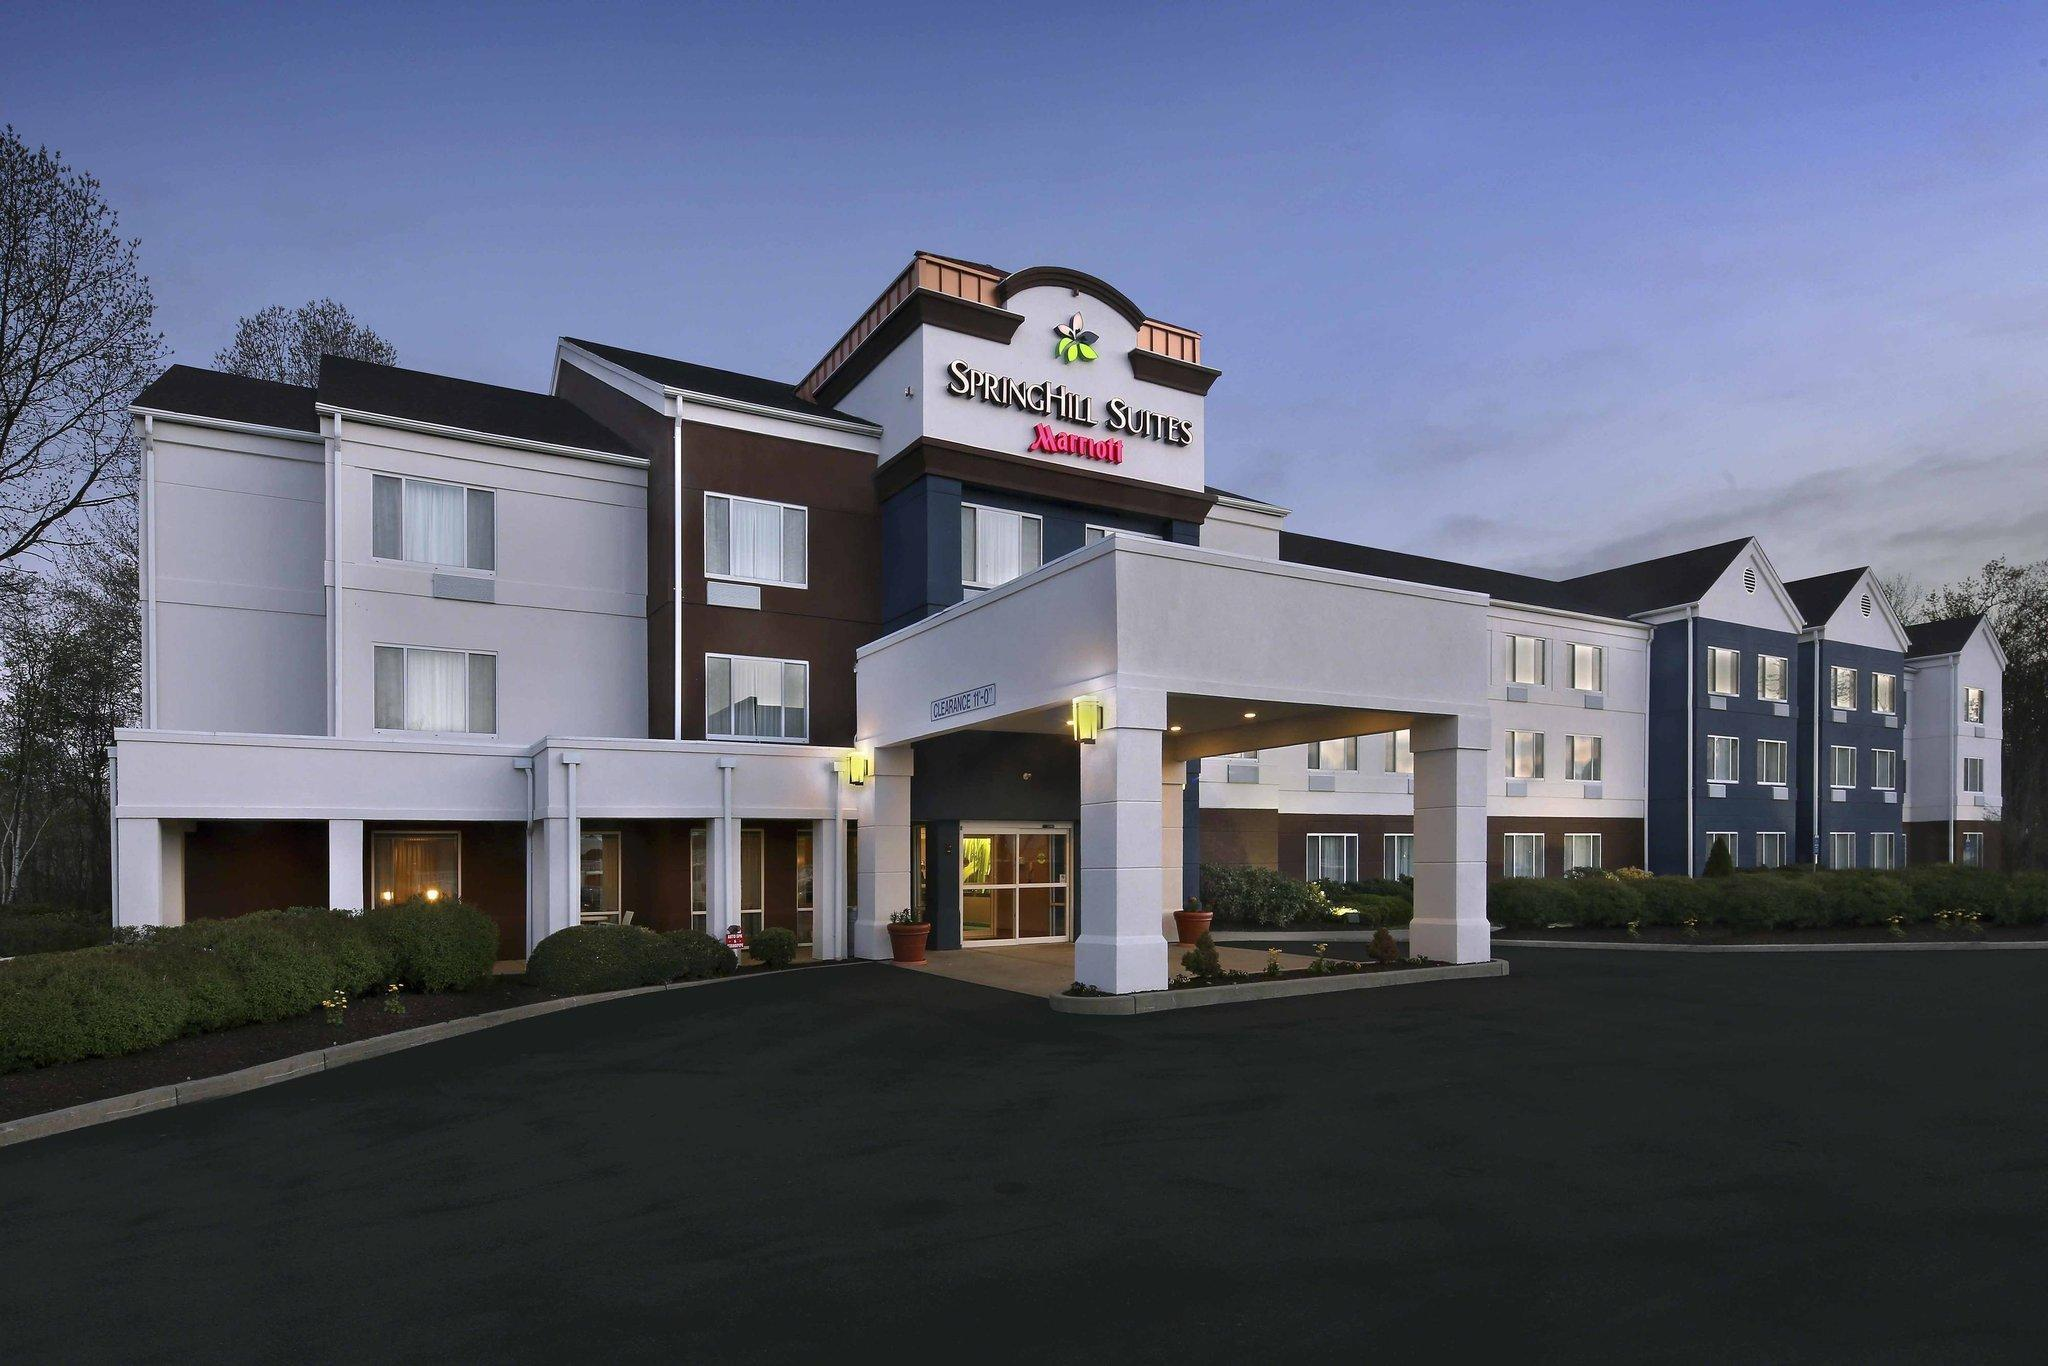 SpringHill Suites Mystic Waterford, New London